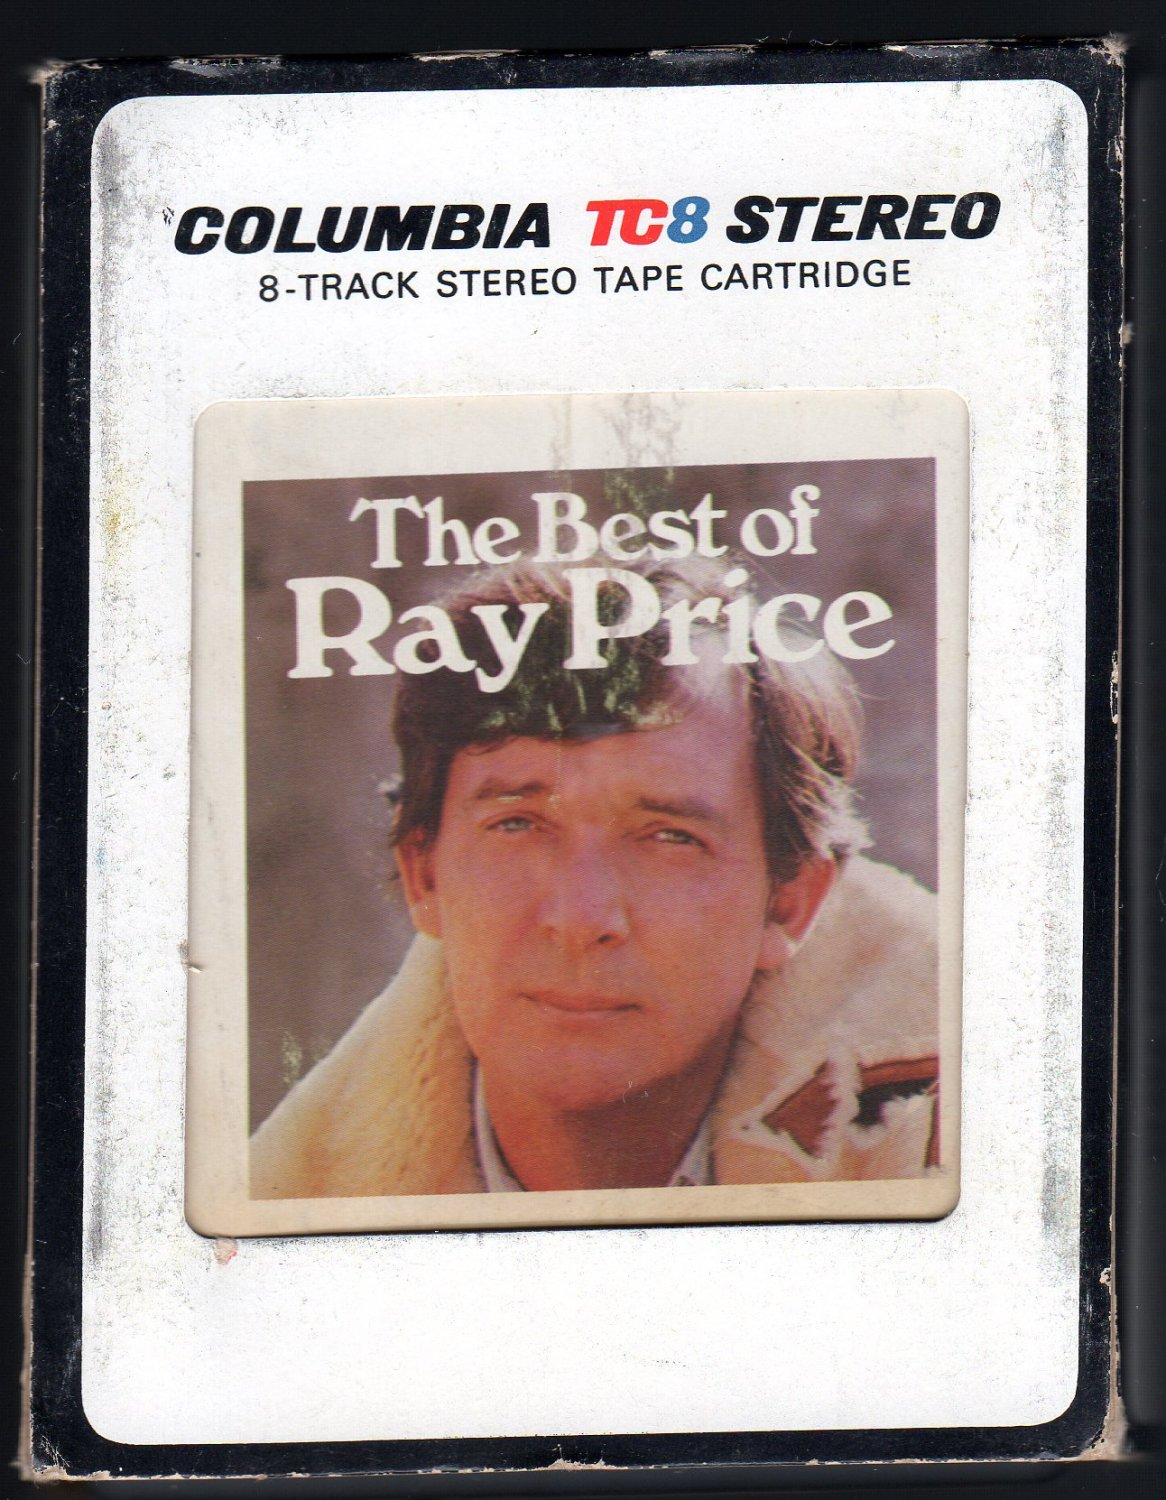 Ray Price - The Best Of Ray Price 1976 CBS T2 8-TRACK TAPE